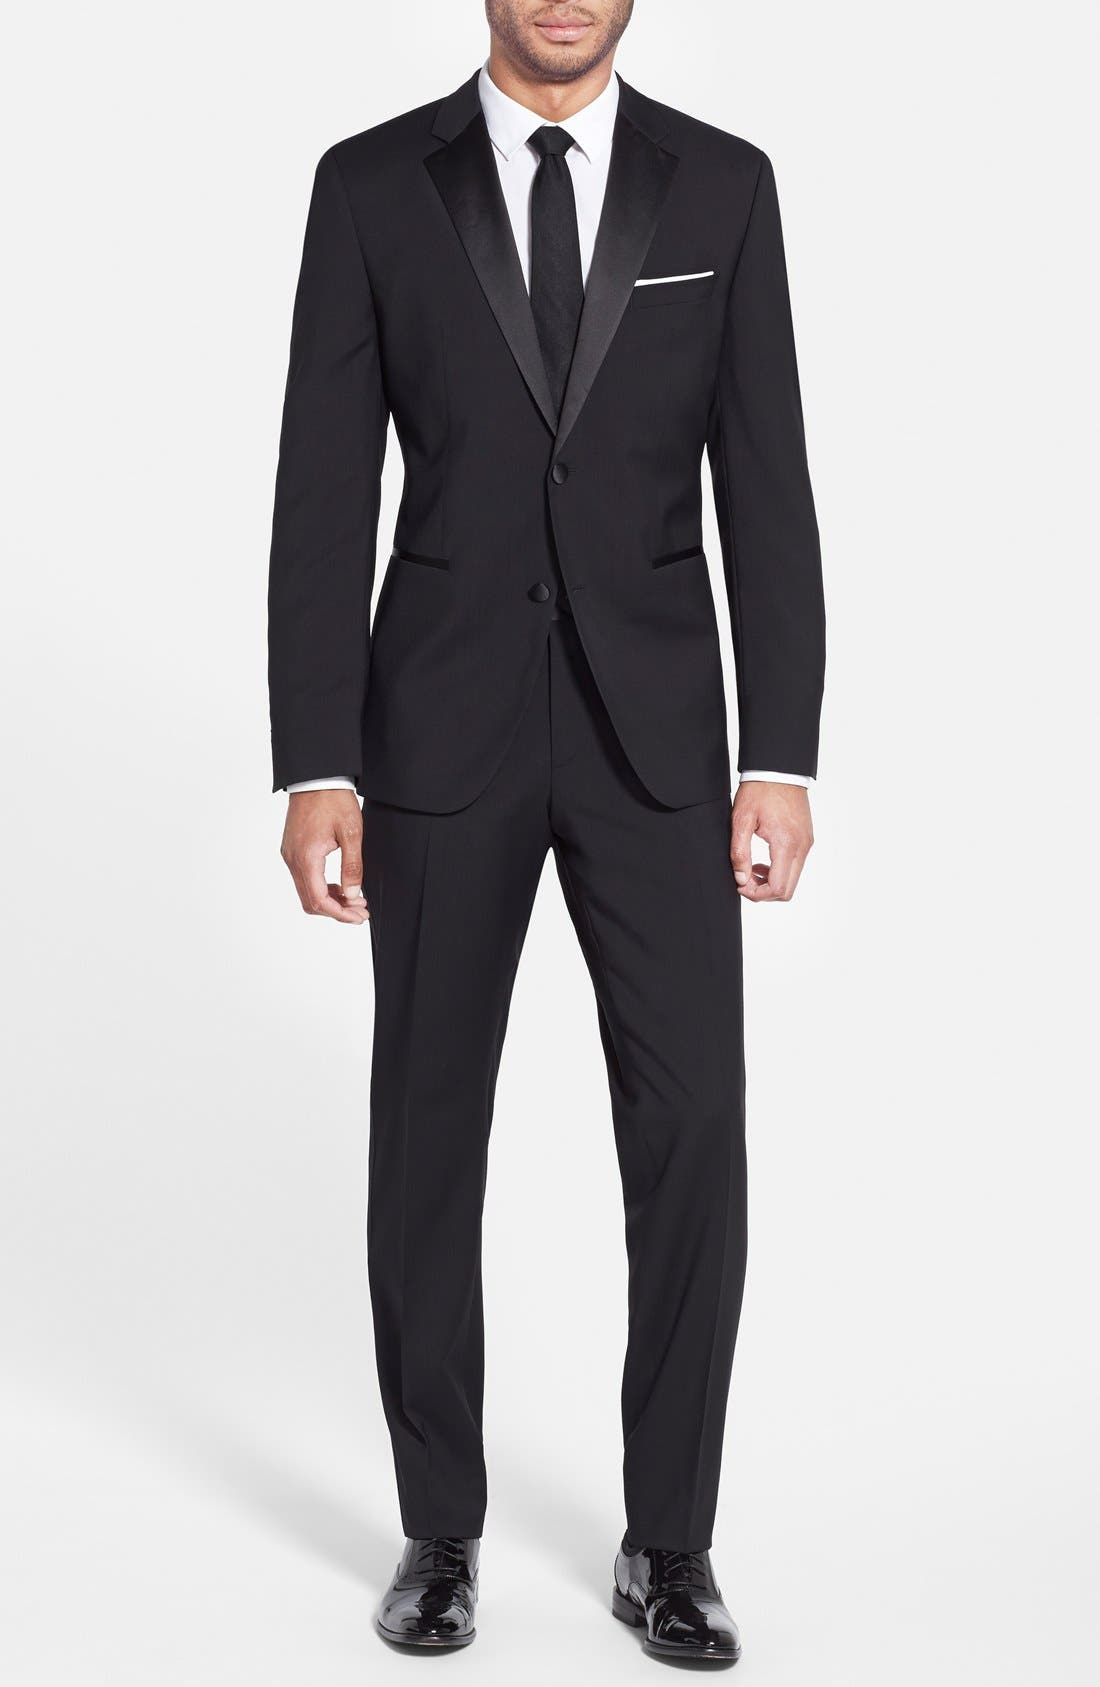 Main Image - BOSS The Stars/Glamour Trim Fit Wool Tuxedo